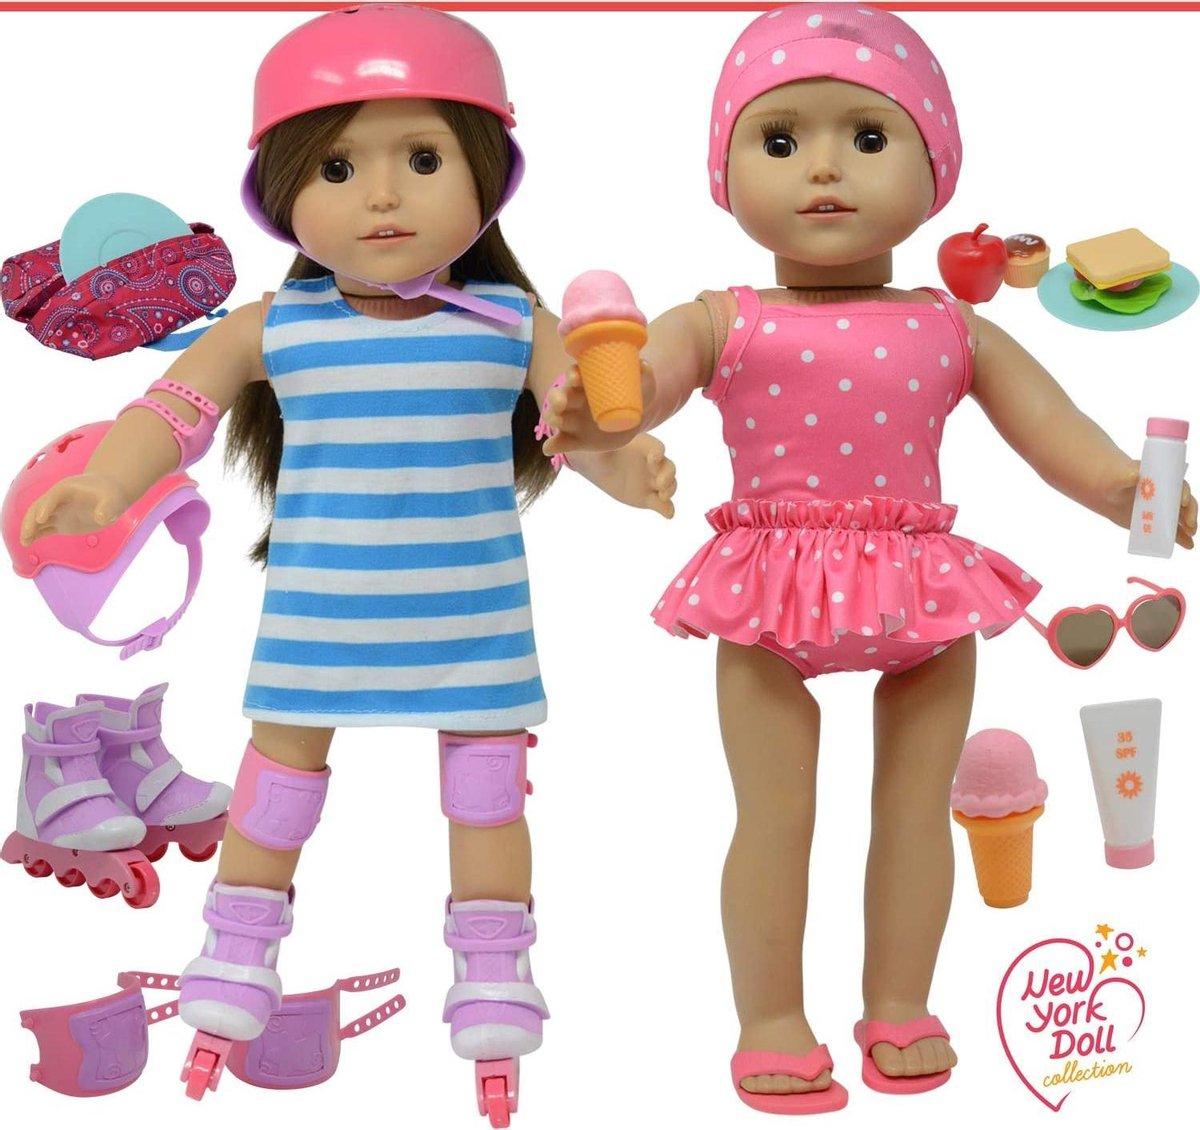 Doll 3 in 1 Summer Set - Roller Skates, Bathing Suit & Picnic Set - 3in1 Zomer 46cm Pop Set